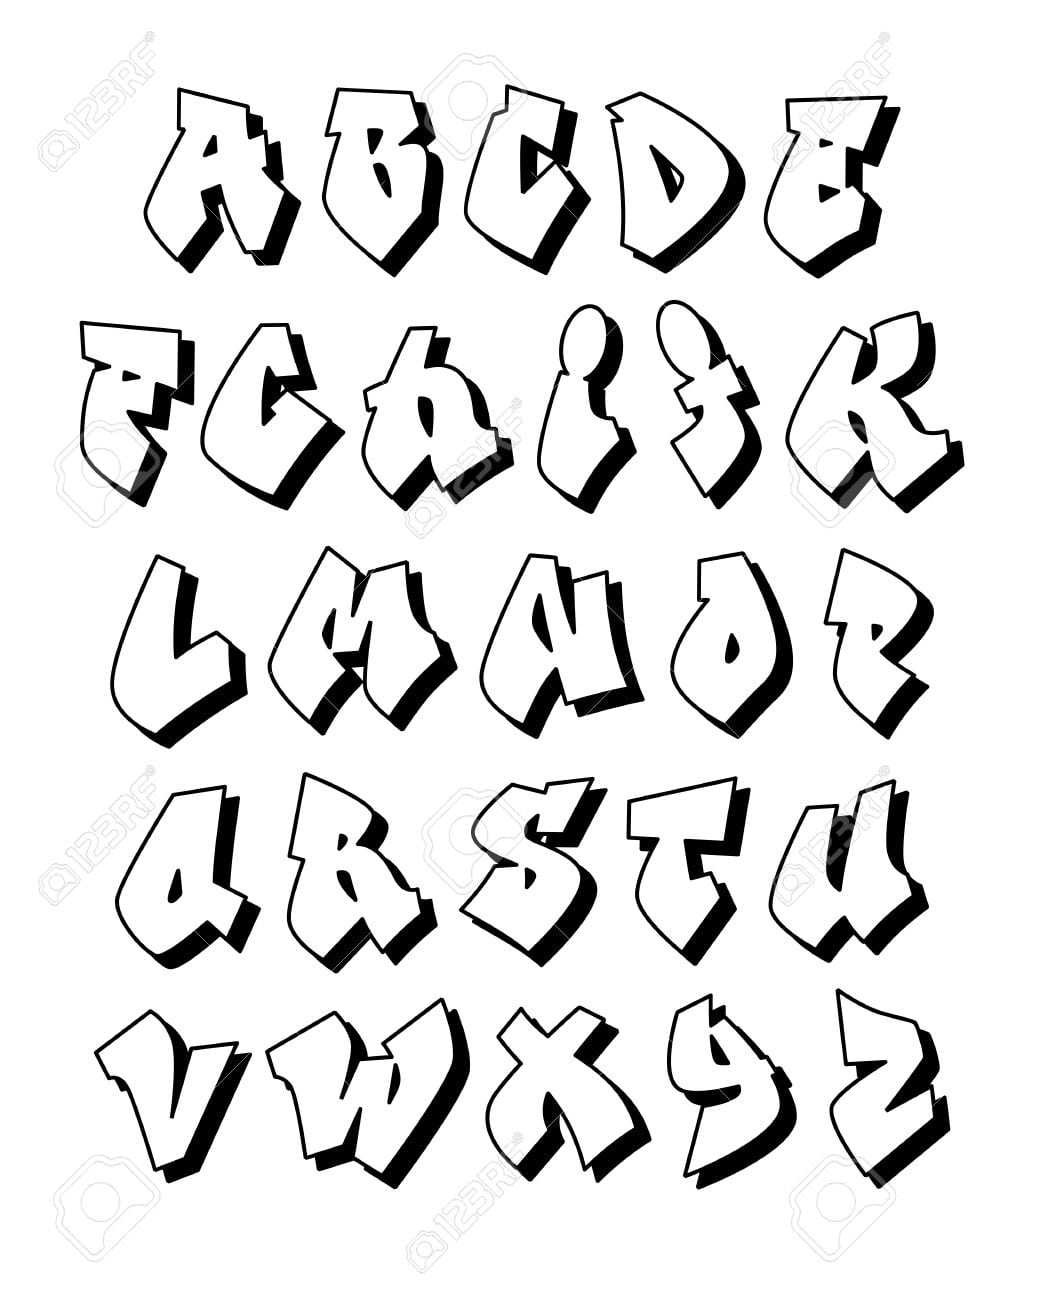 Free Alphabet Coloring Pages additionally Symbols01 likewise Stock Illustration Vector Hand Drawn Alphabet Handwritten Letters Handwritten Script Alphabet Lettering Custom Typography Your Designs Image76801658 furthermore Stock Photo Letter T Image7207310 as well Alfabeto De Stranger Things 20417. on alphabet art letter e